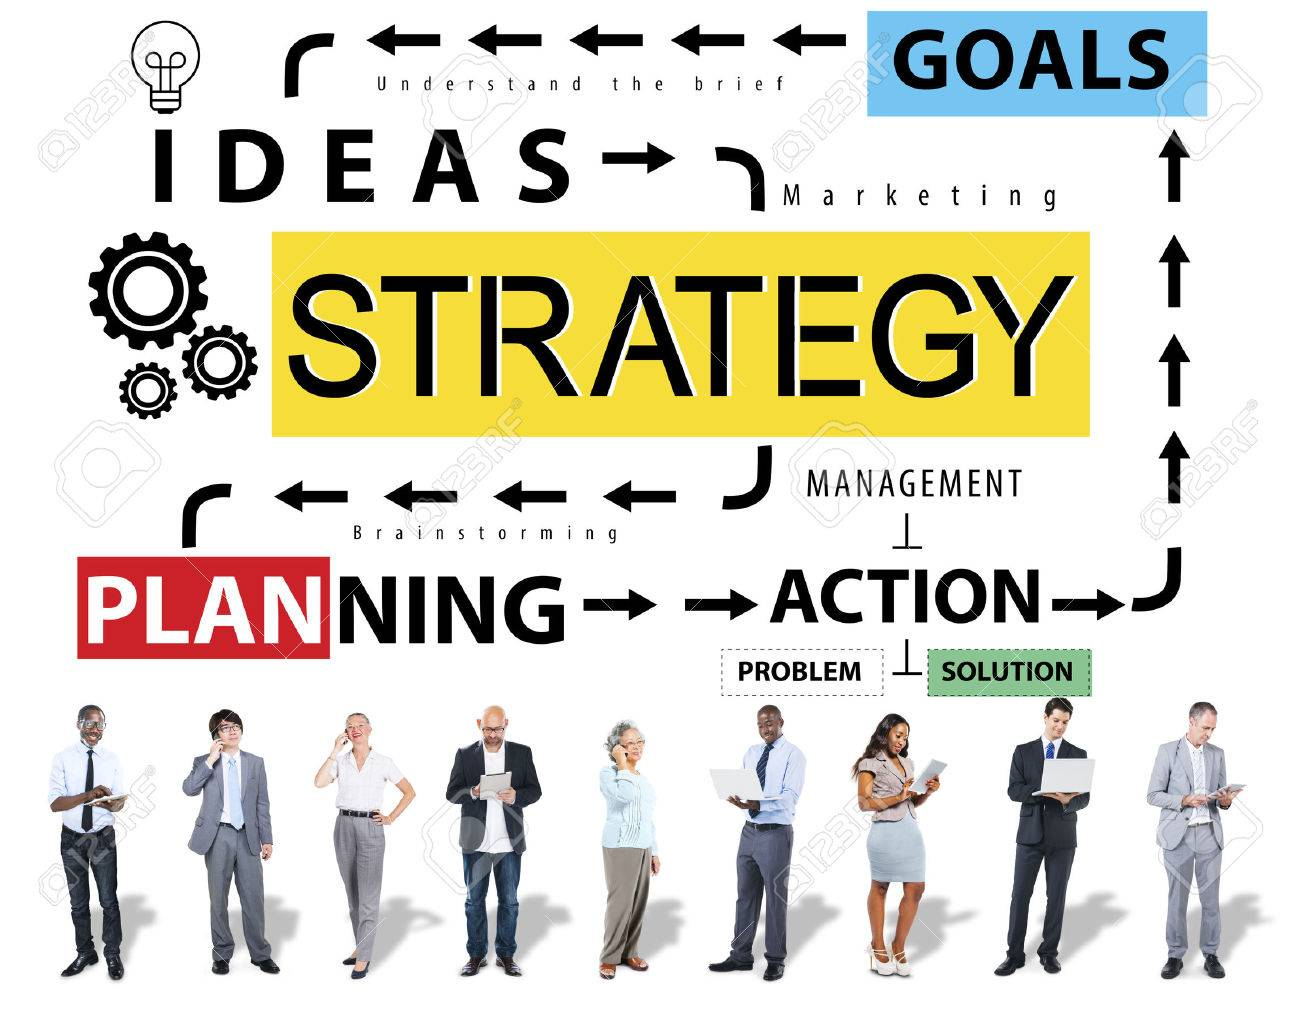 Strategy Ideas Planning Action Goals Concept - 53952743